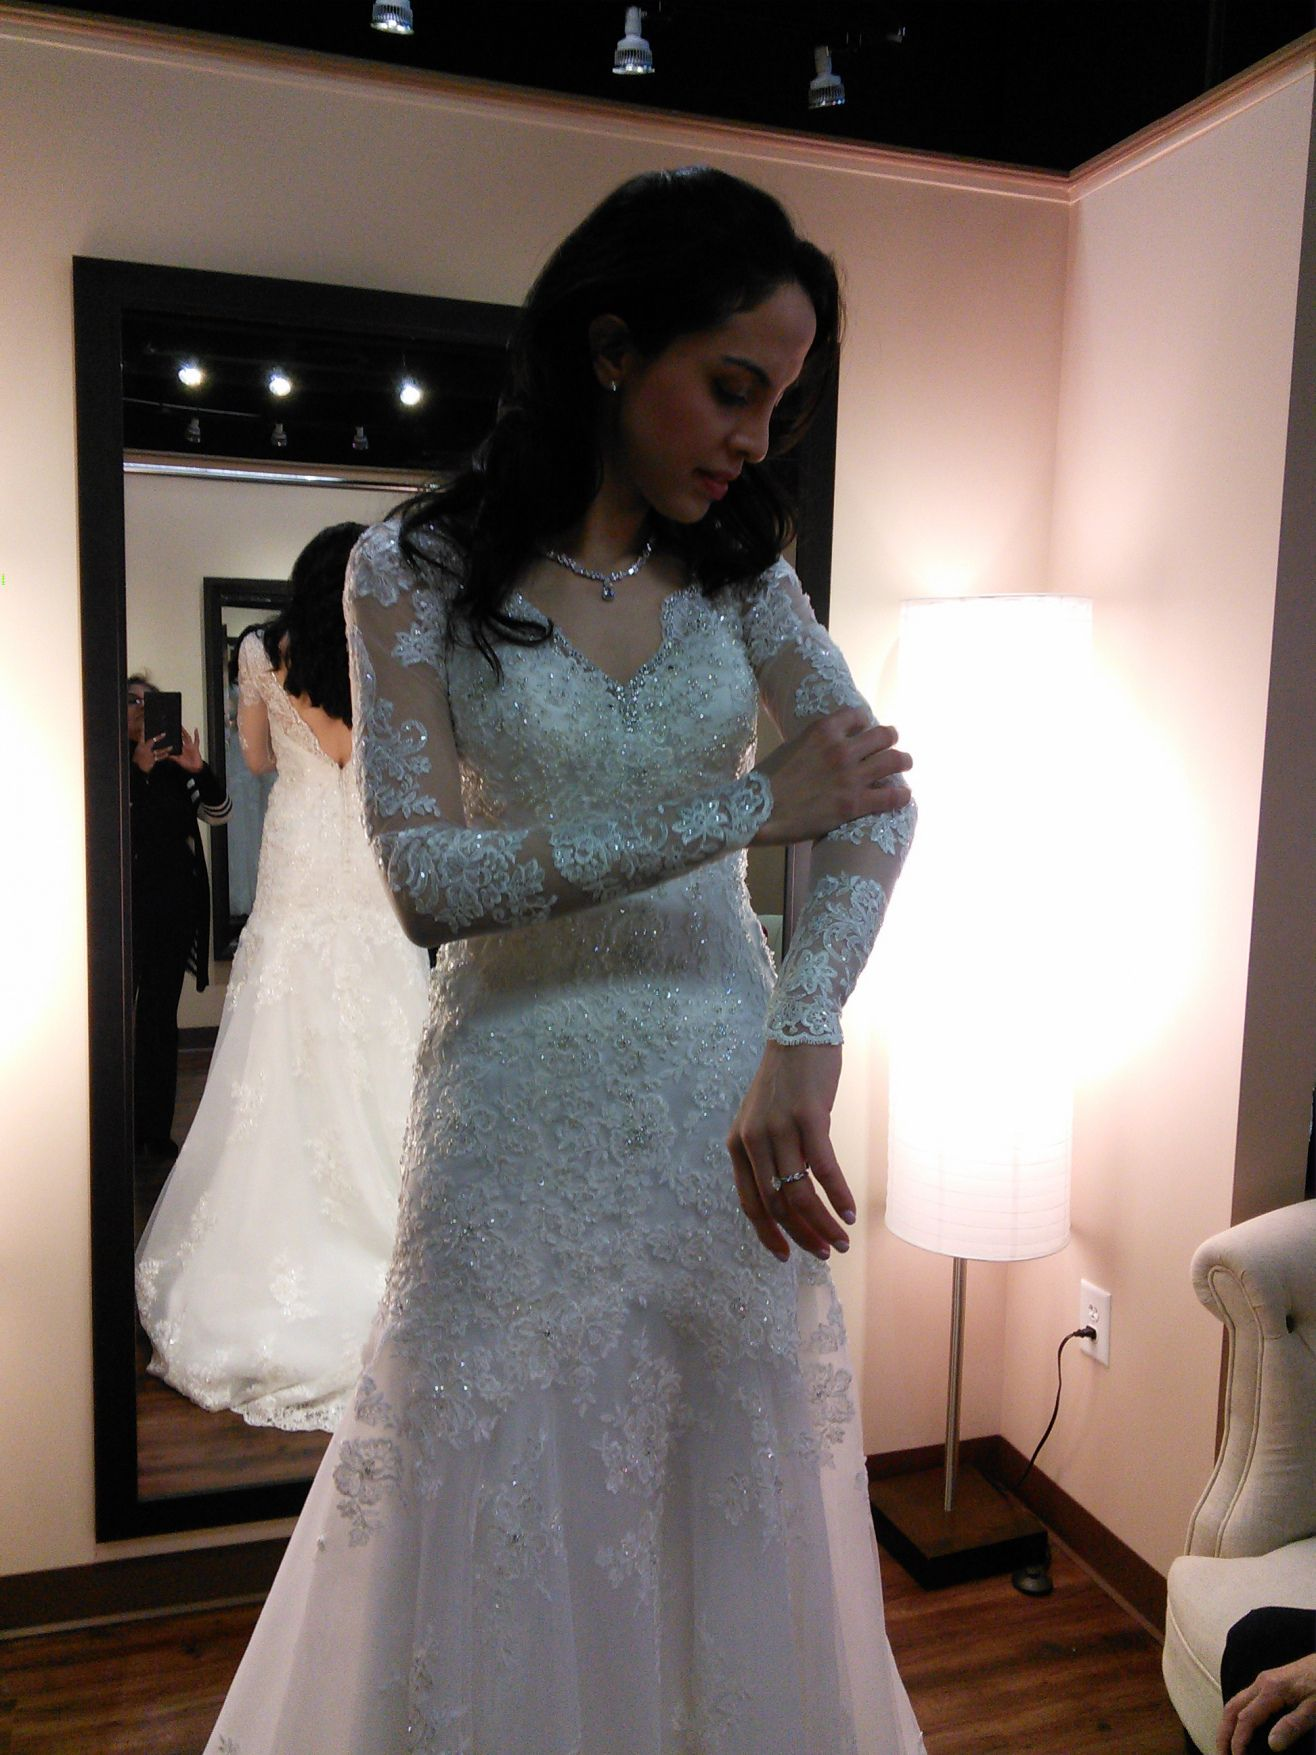 77+ Adding Lace Sleeves to Wedding Dress - Dressy Dresses for ...